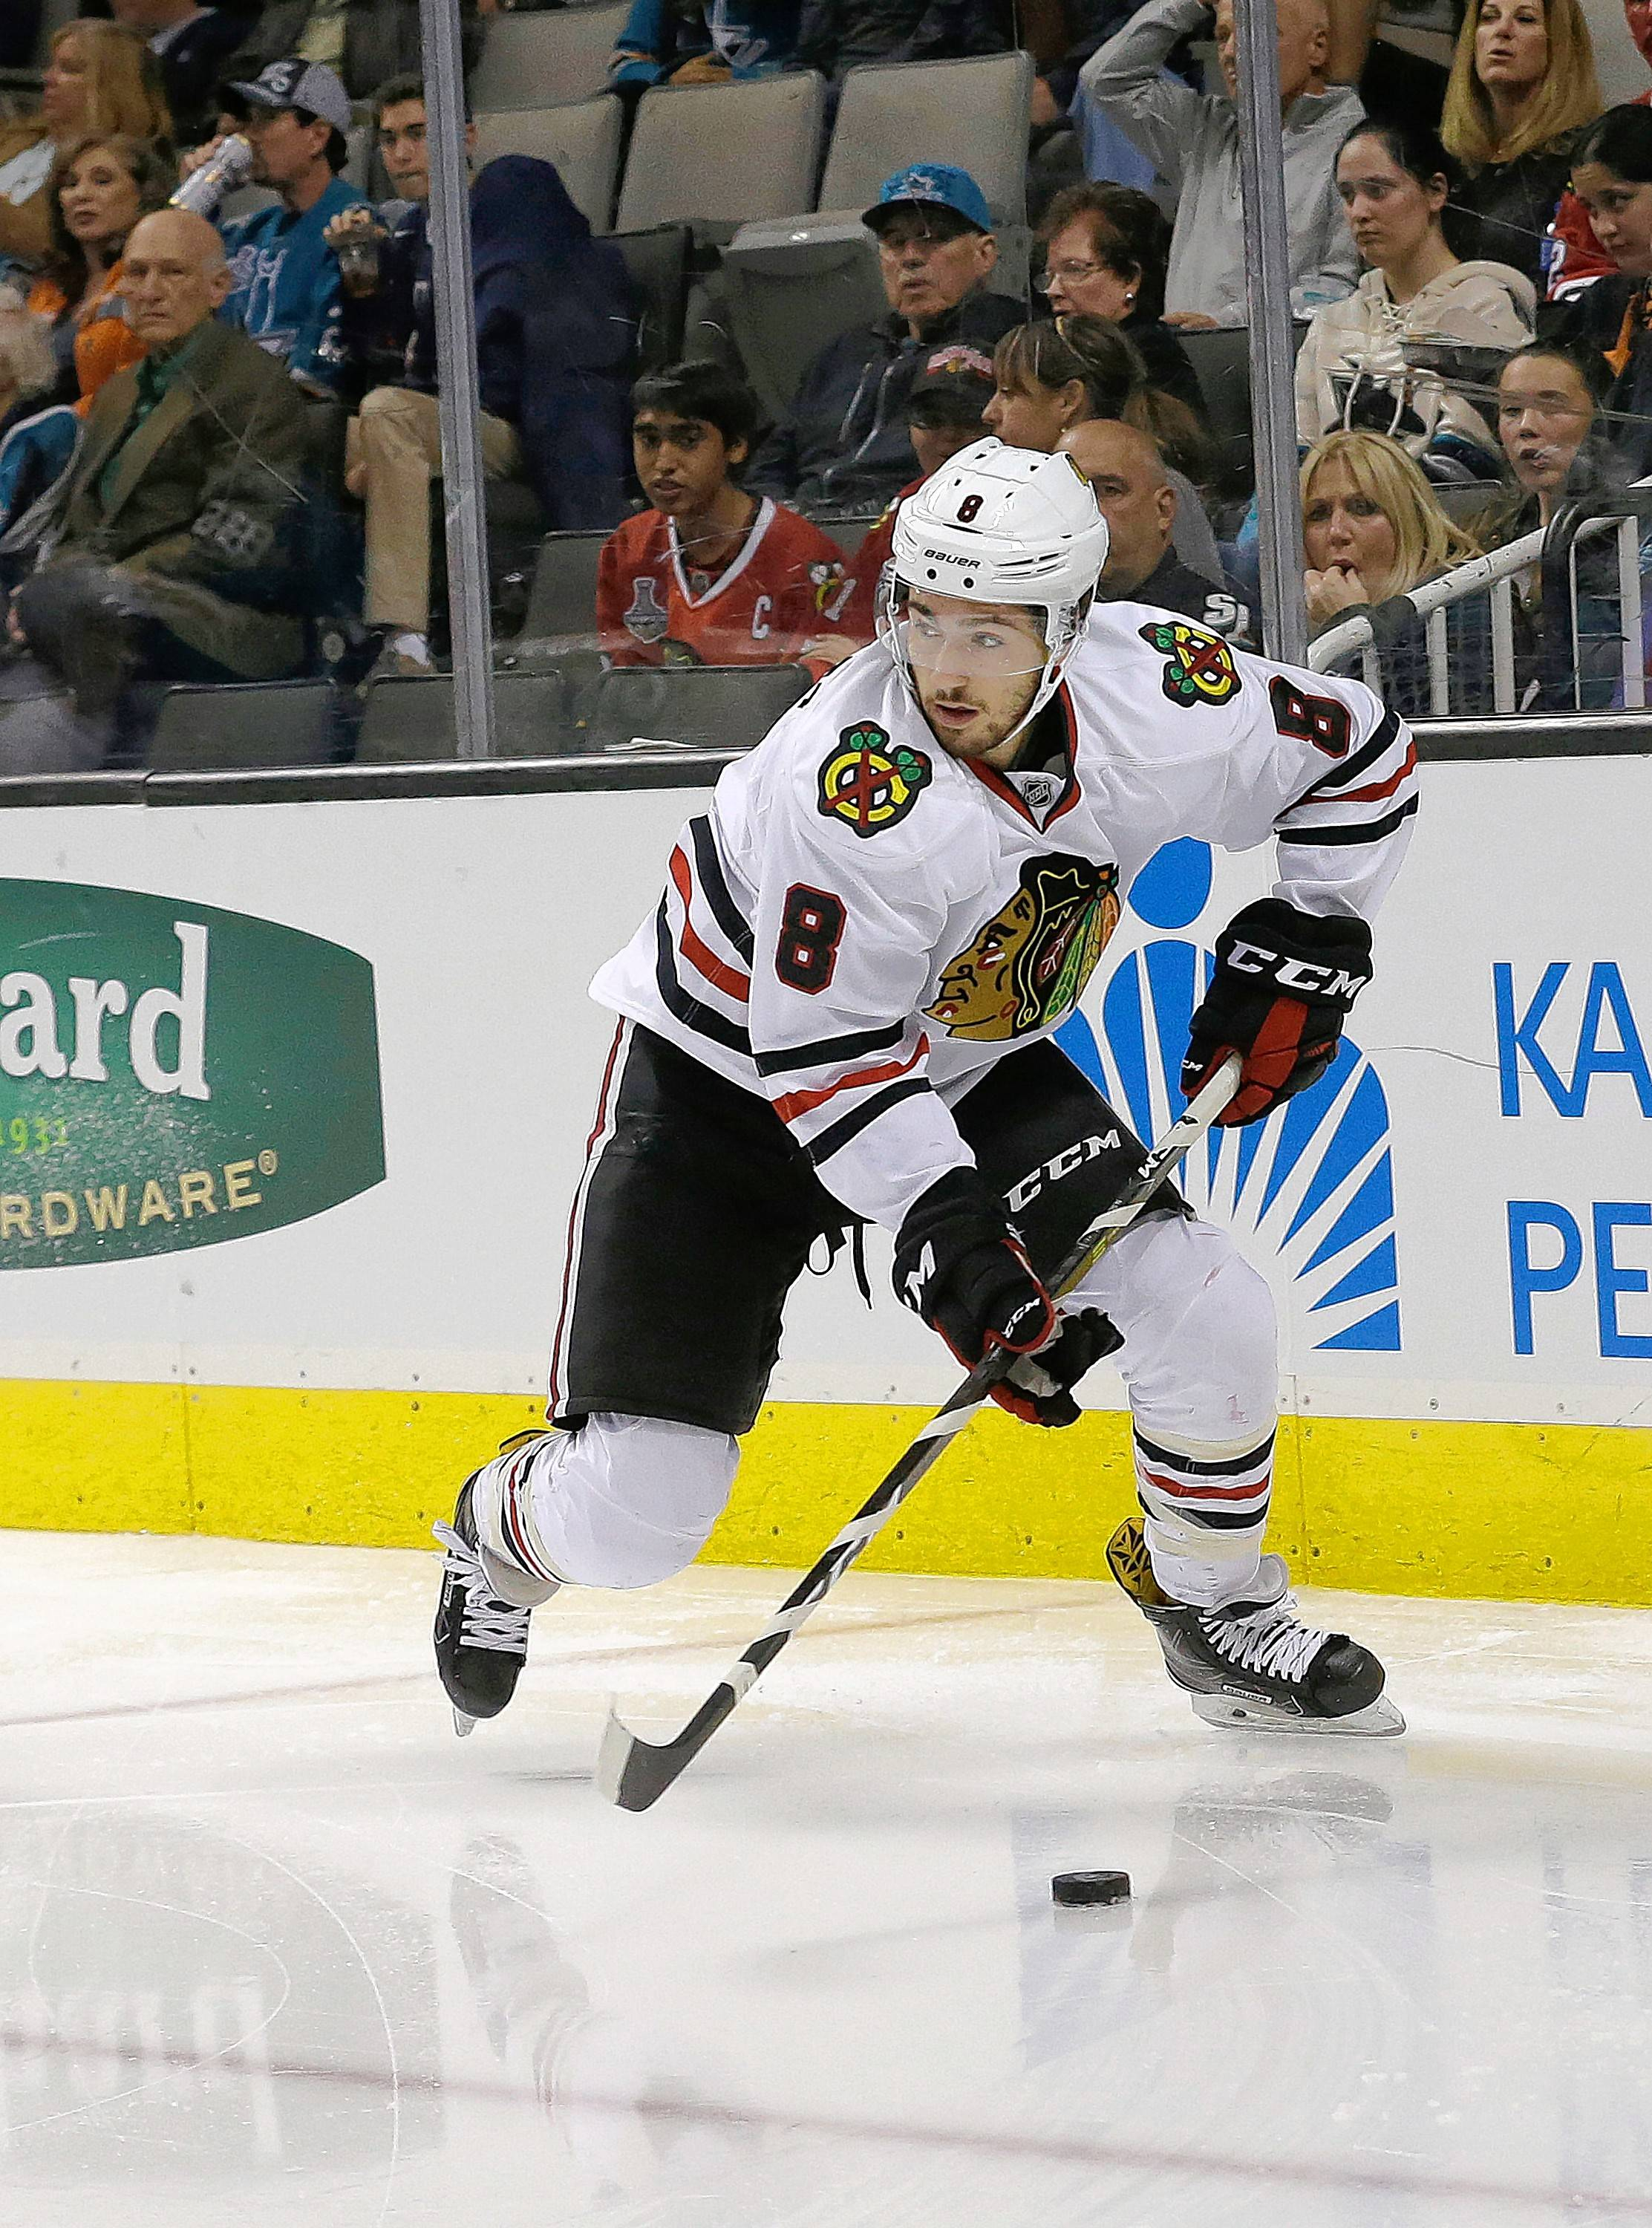 Blackhawks' Schmaltz will now try and get his game going in AHL